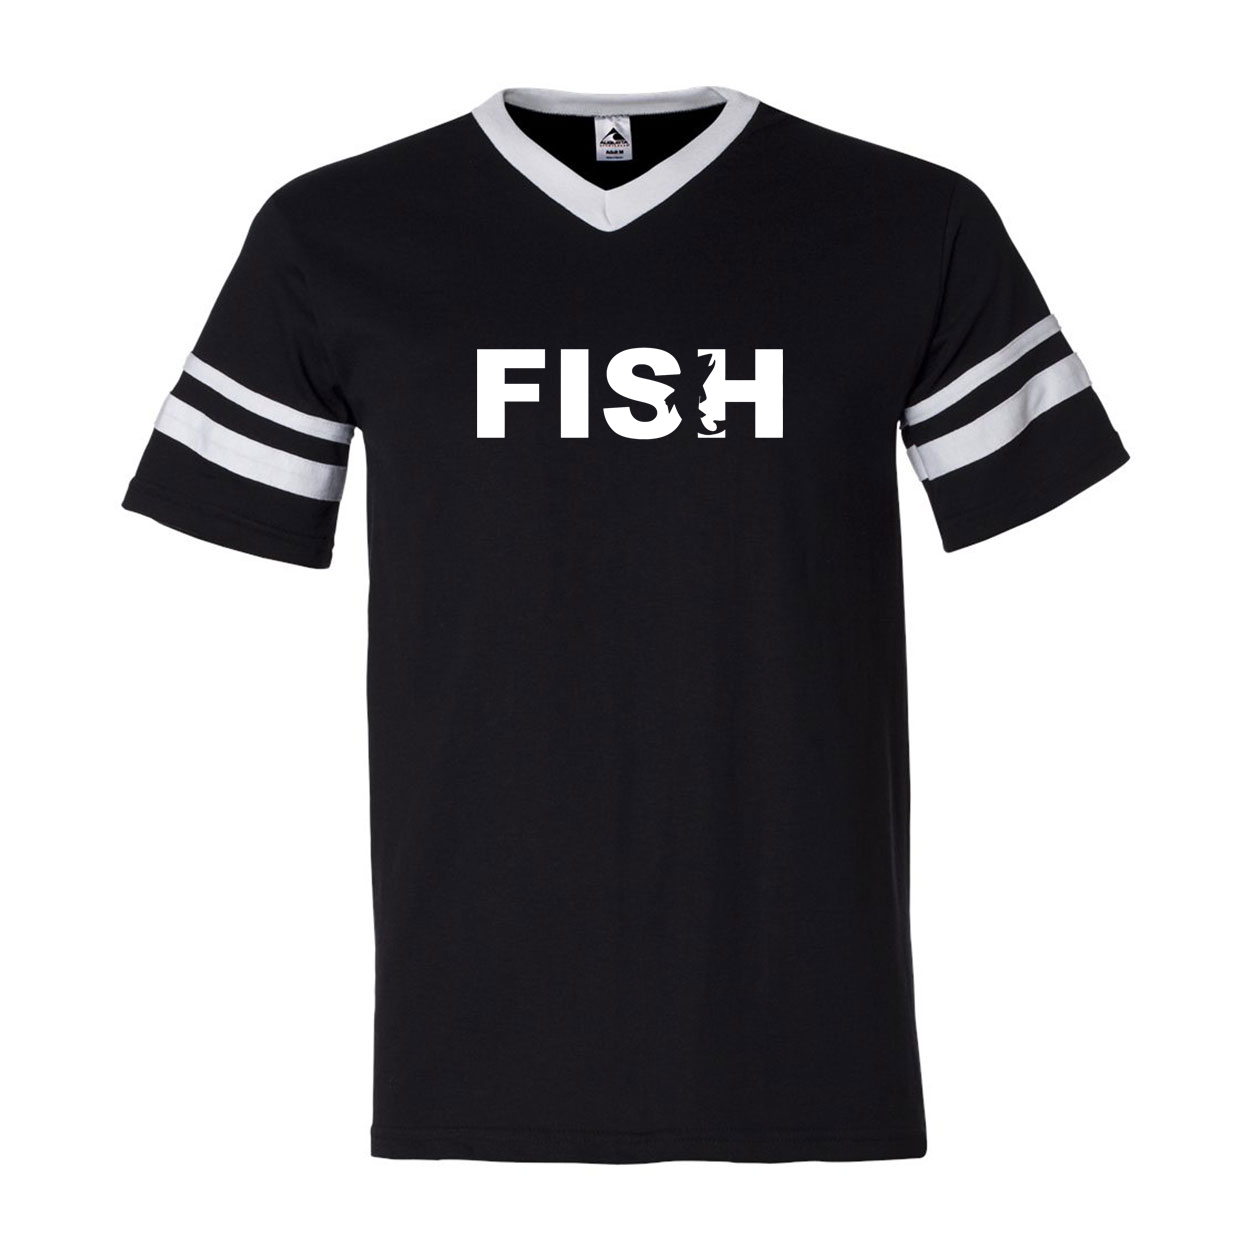 Fish Catch Logo Classic Premium Striped Jersey T-Shirt Black/White (White Logo)